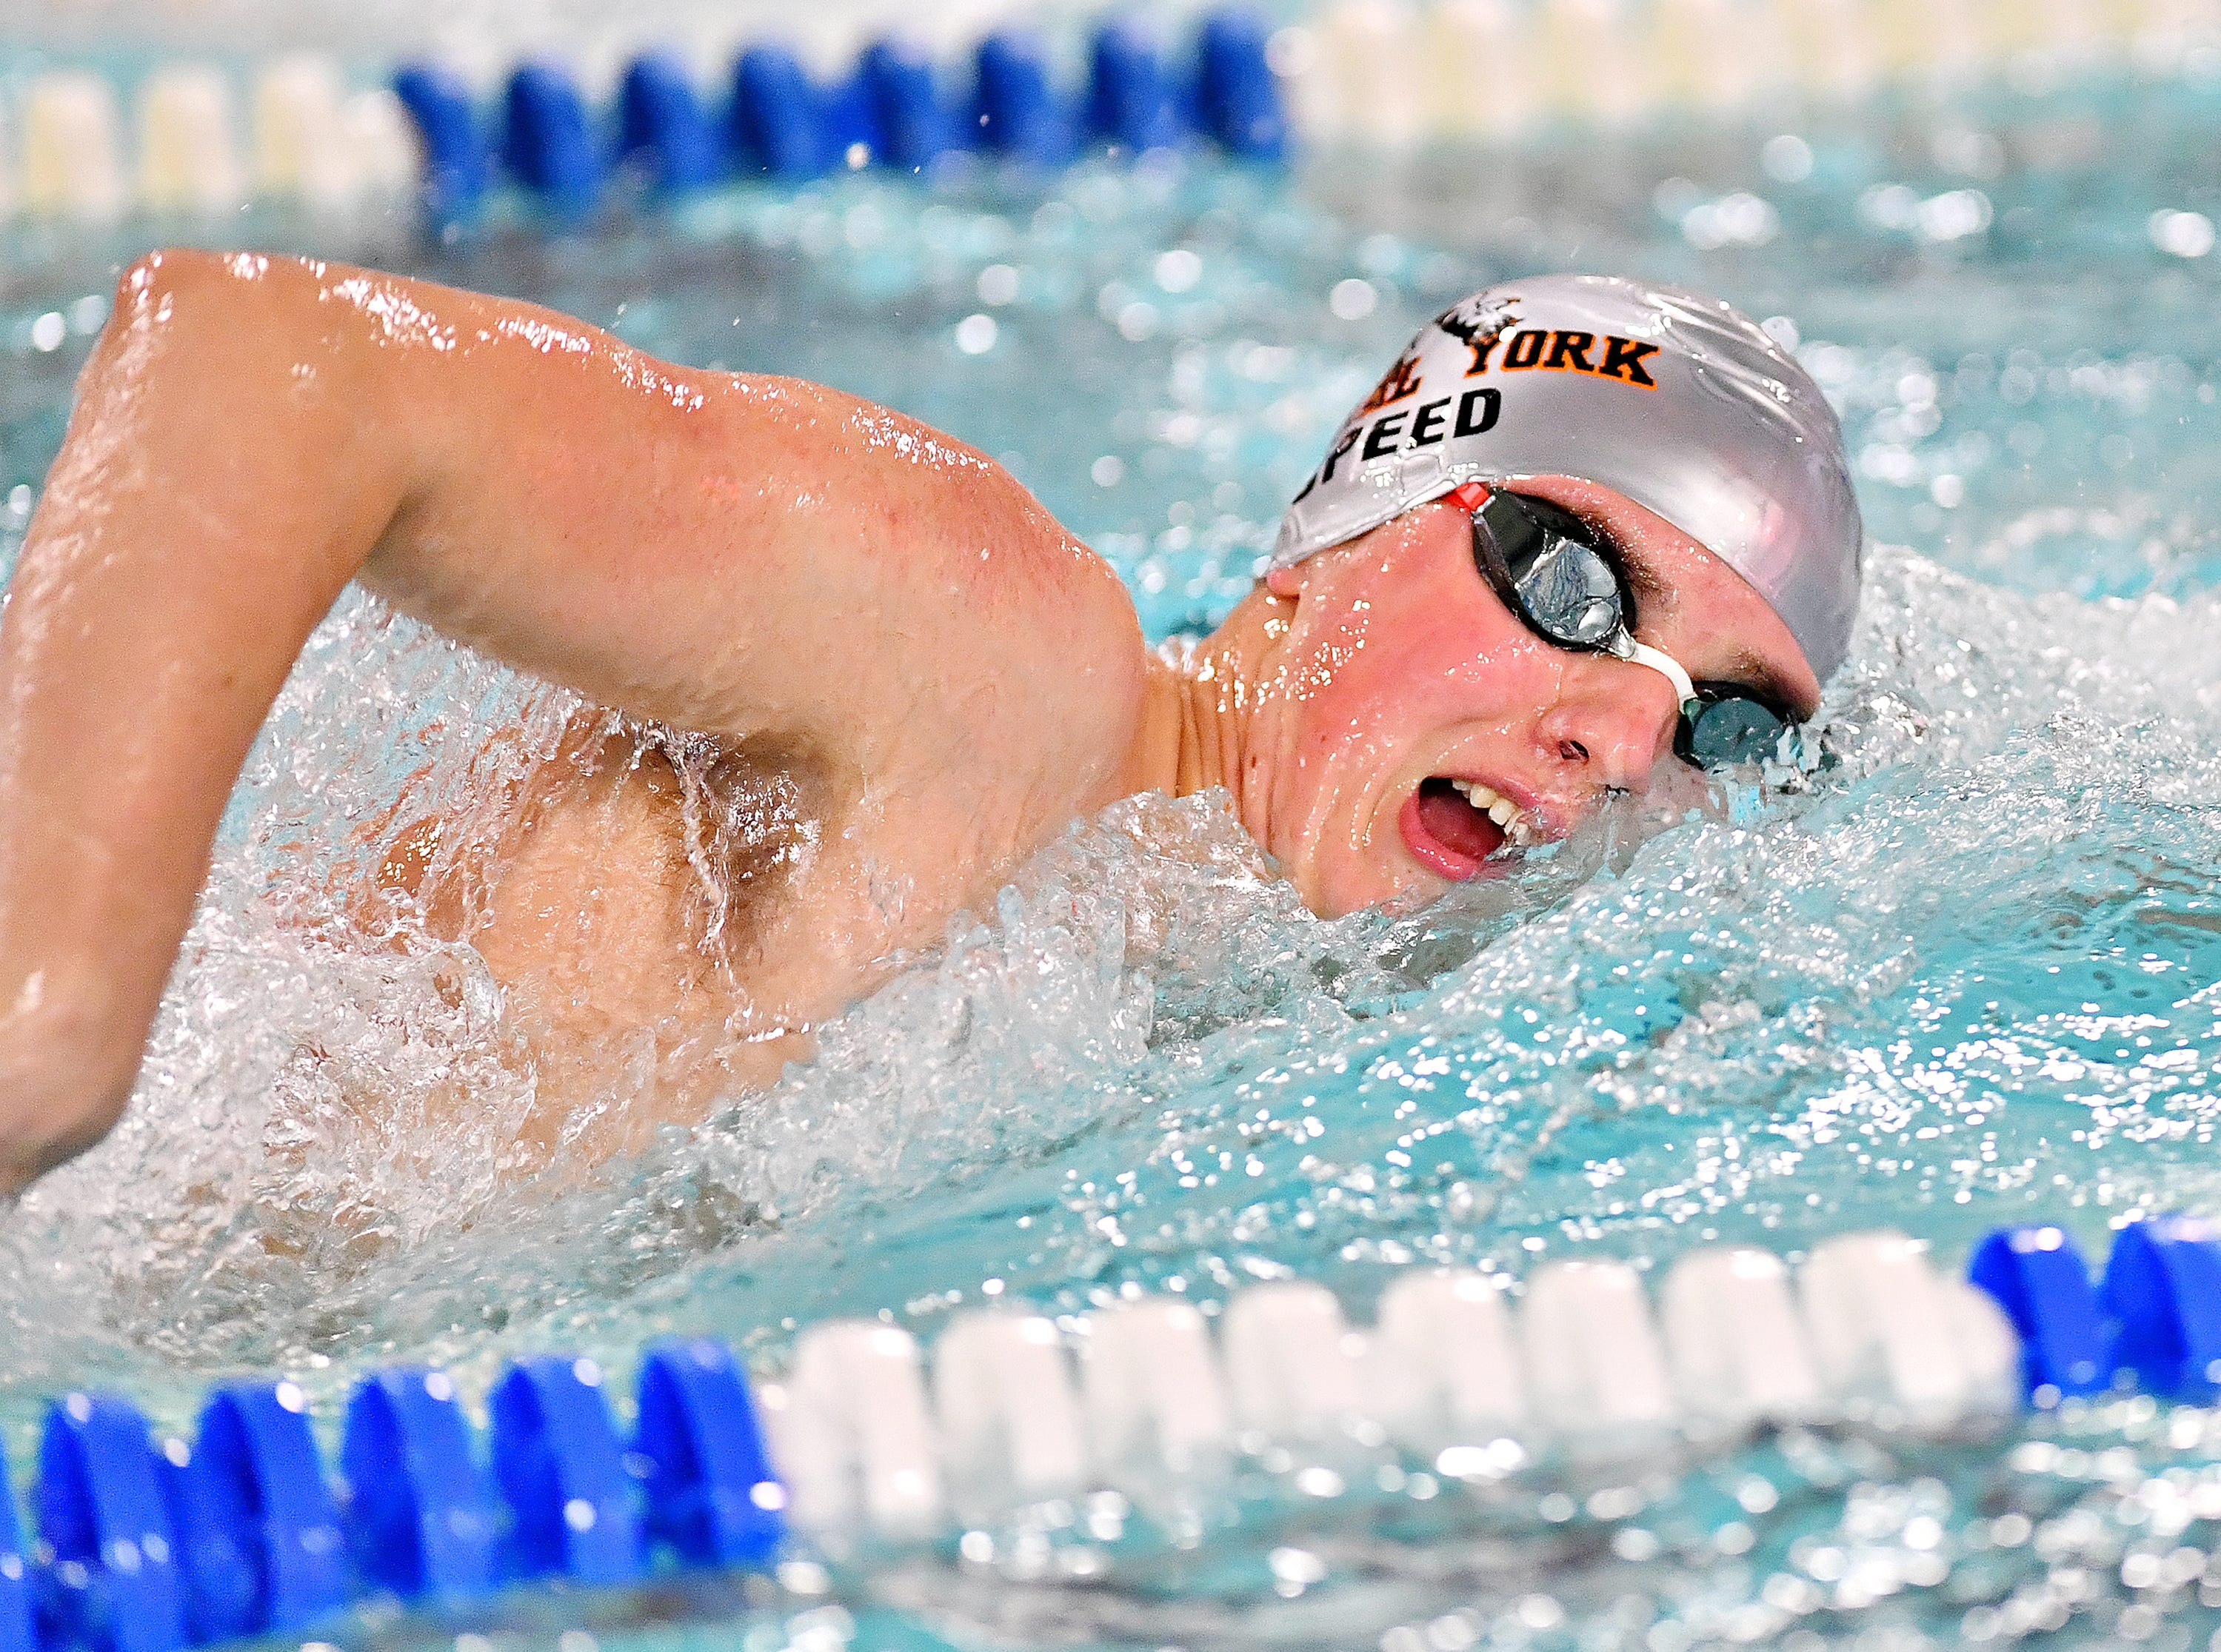 Central York's Cameron Speed wins the 500 Yard Freestyle event at 5:00.91 during swimming action against Dallastown at Dallastown Area High School in York Township, Thursday, Jan. 10, 2019. Dawn J. Sagert photo